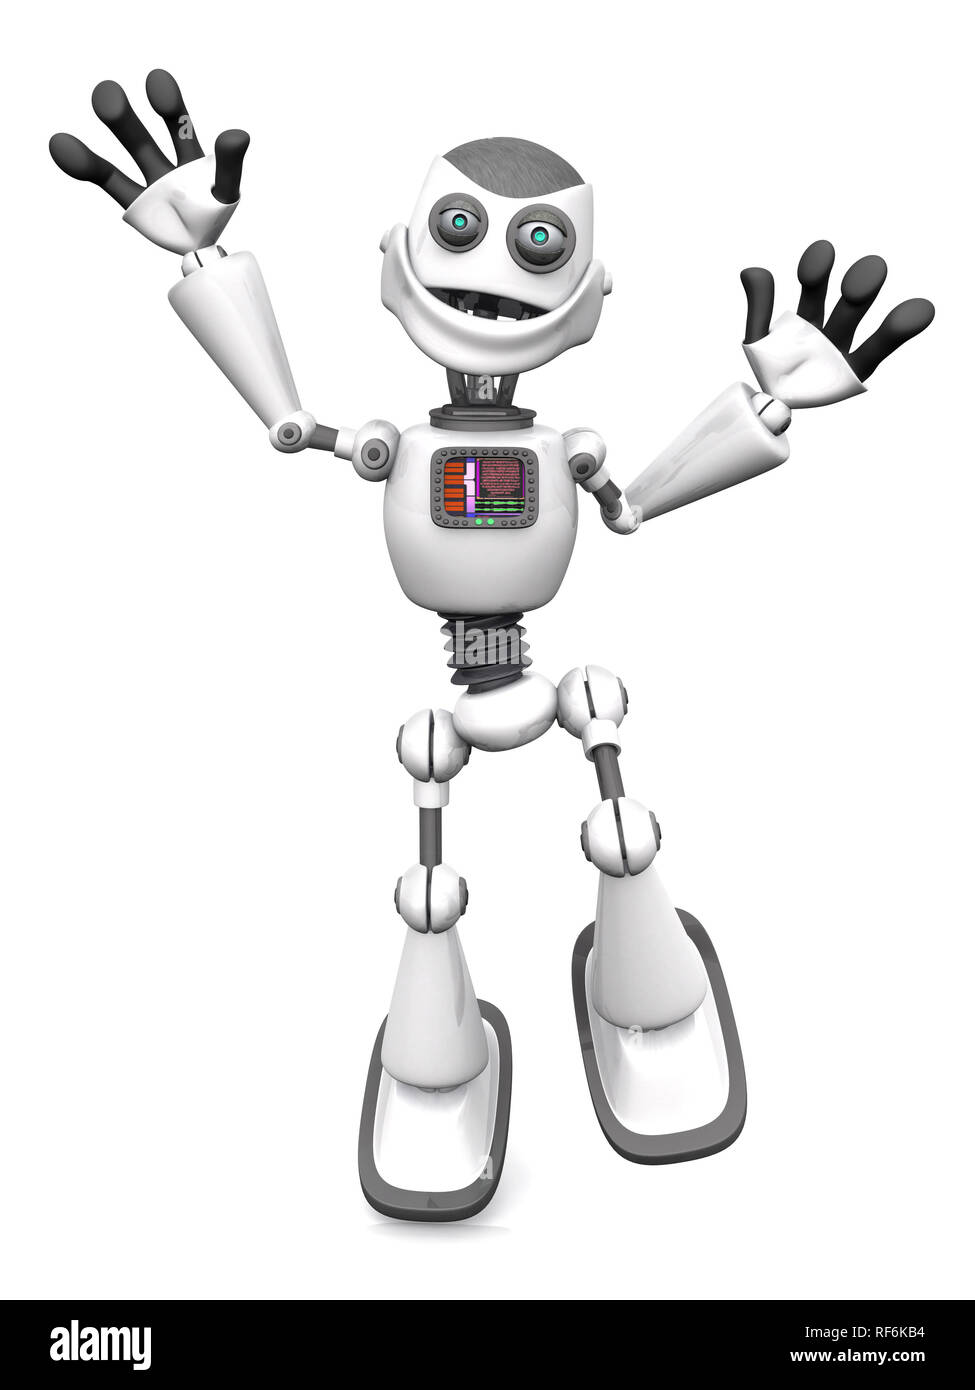 A smiling white cartoon robot jumping for joy. White background. - Stock Image